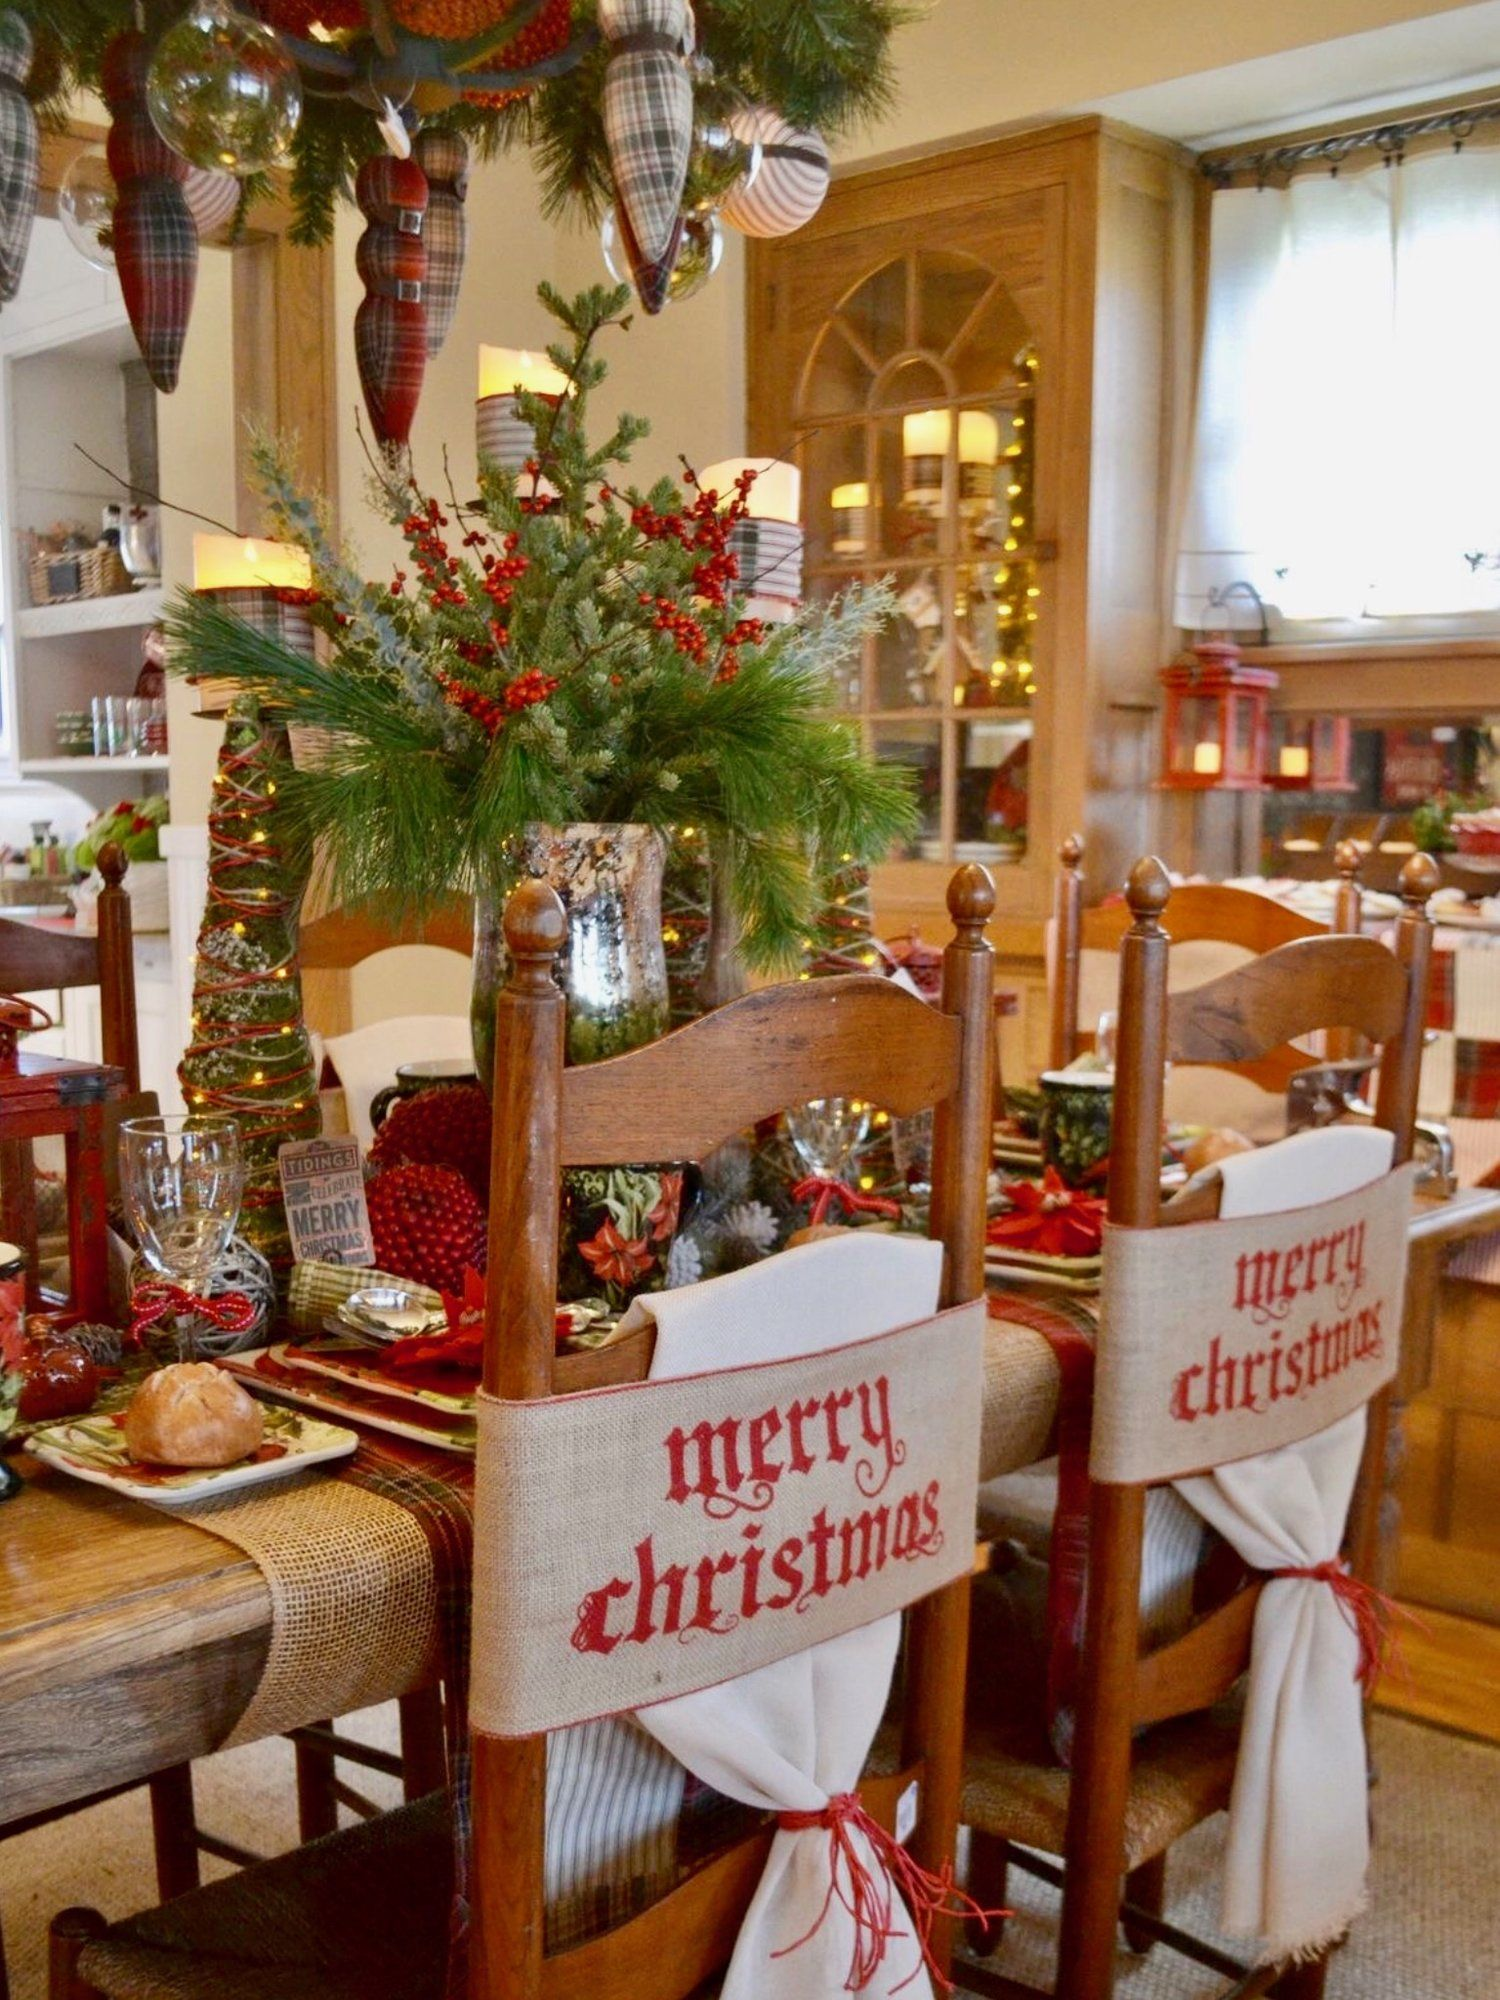 Top Christmas Table Decorations From Pinterest And Instagram Styleestate Decor For Stairs